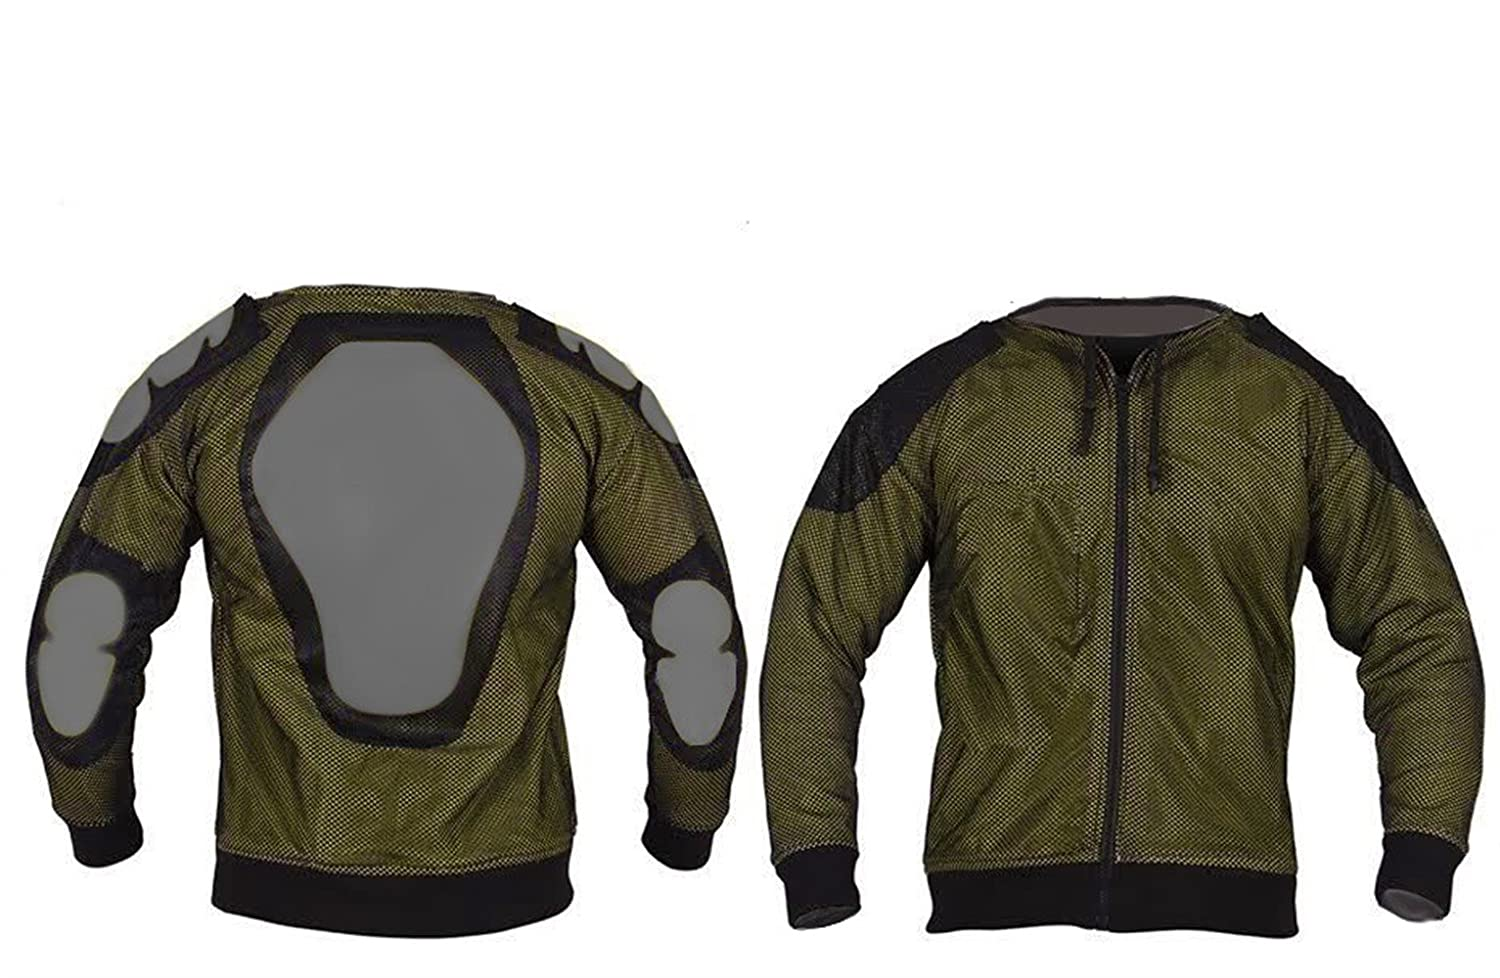 Lrg  44//46 Bikers Gear Crossfire Black Motorcycle Hoodie Jacket Fully Lined with Reinforced DuPont/™ Kevlar/® CE1621-1 PU Armour